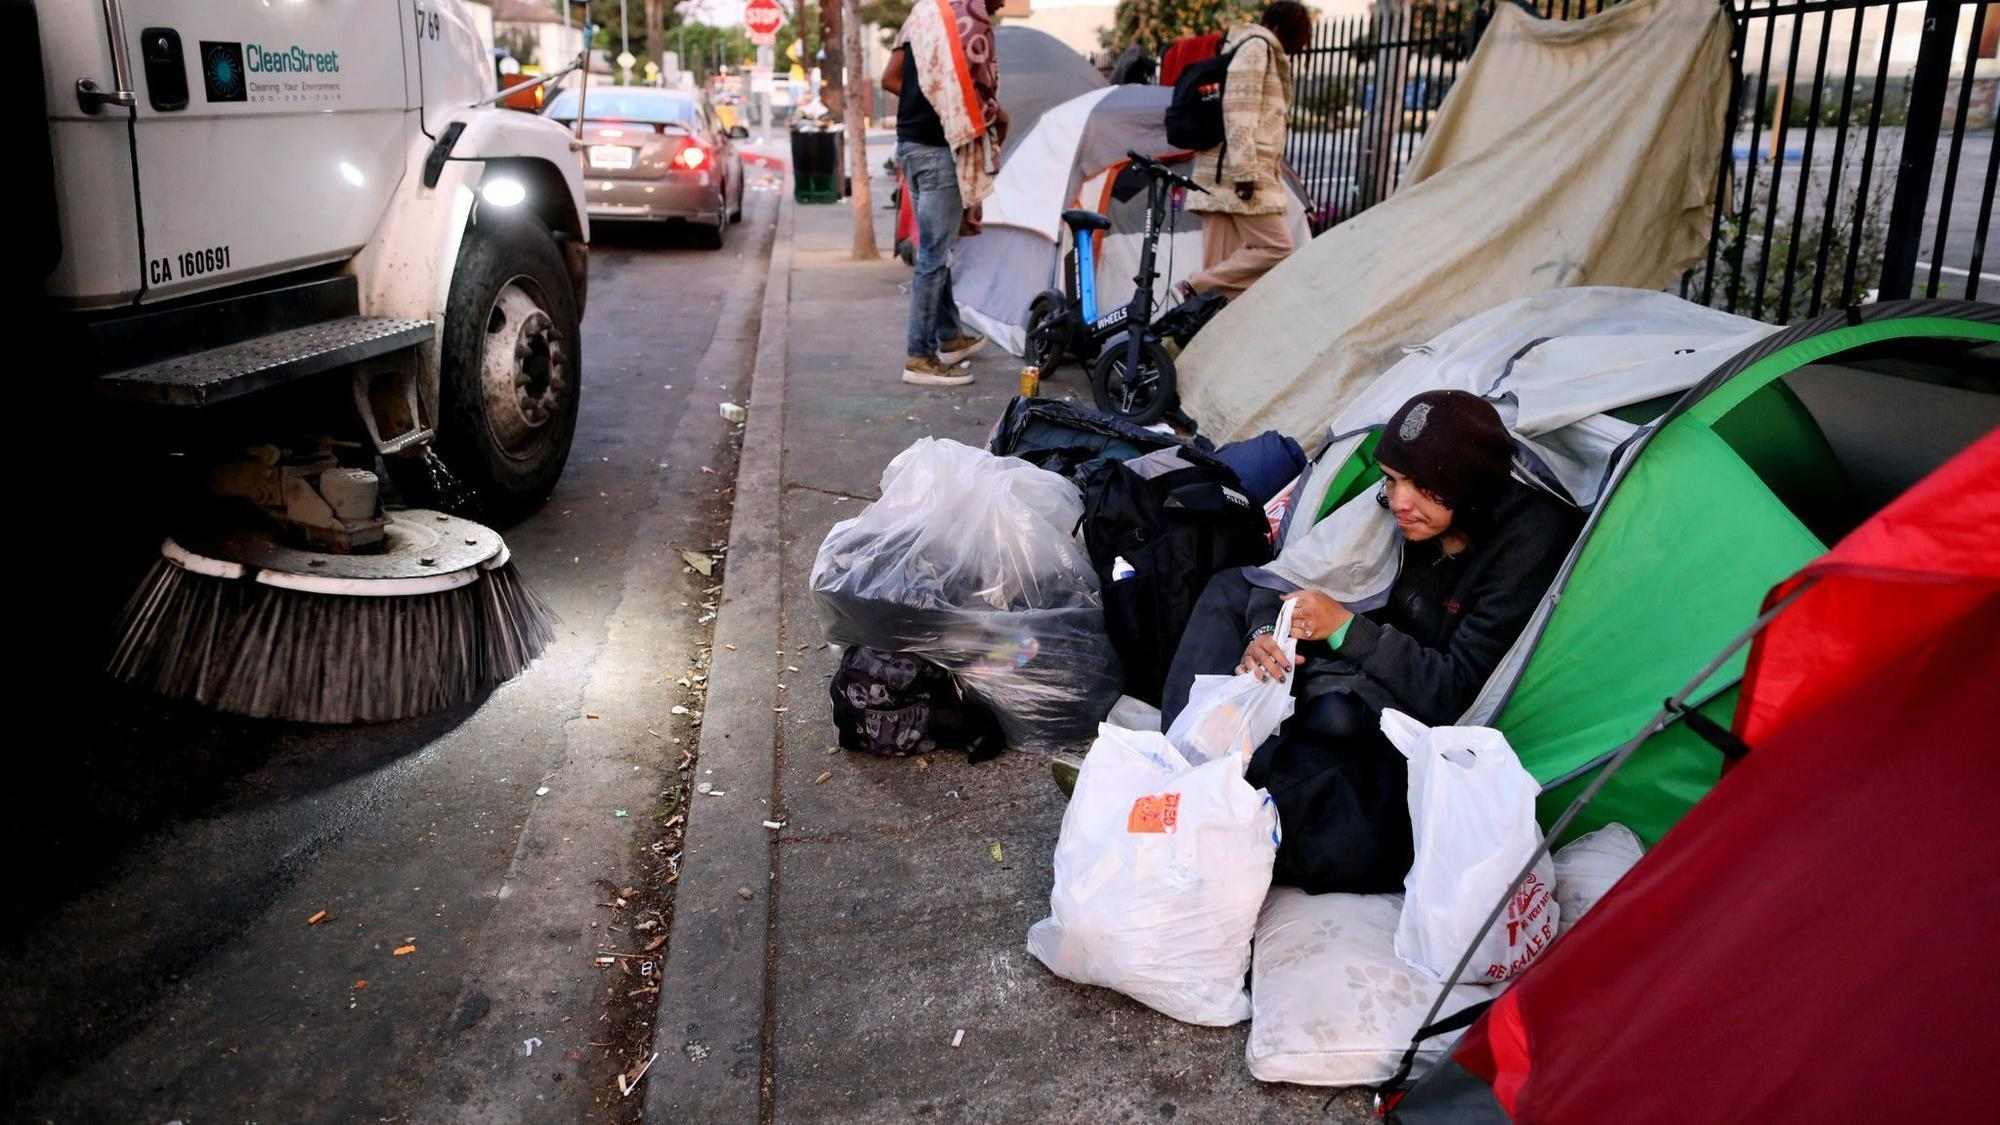 L.A. is spending billions to fix homelessness. The problem is only getting worse